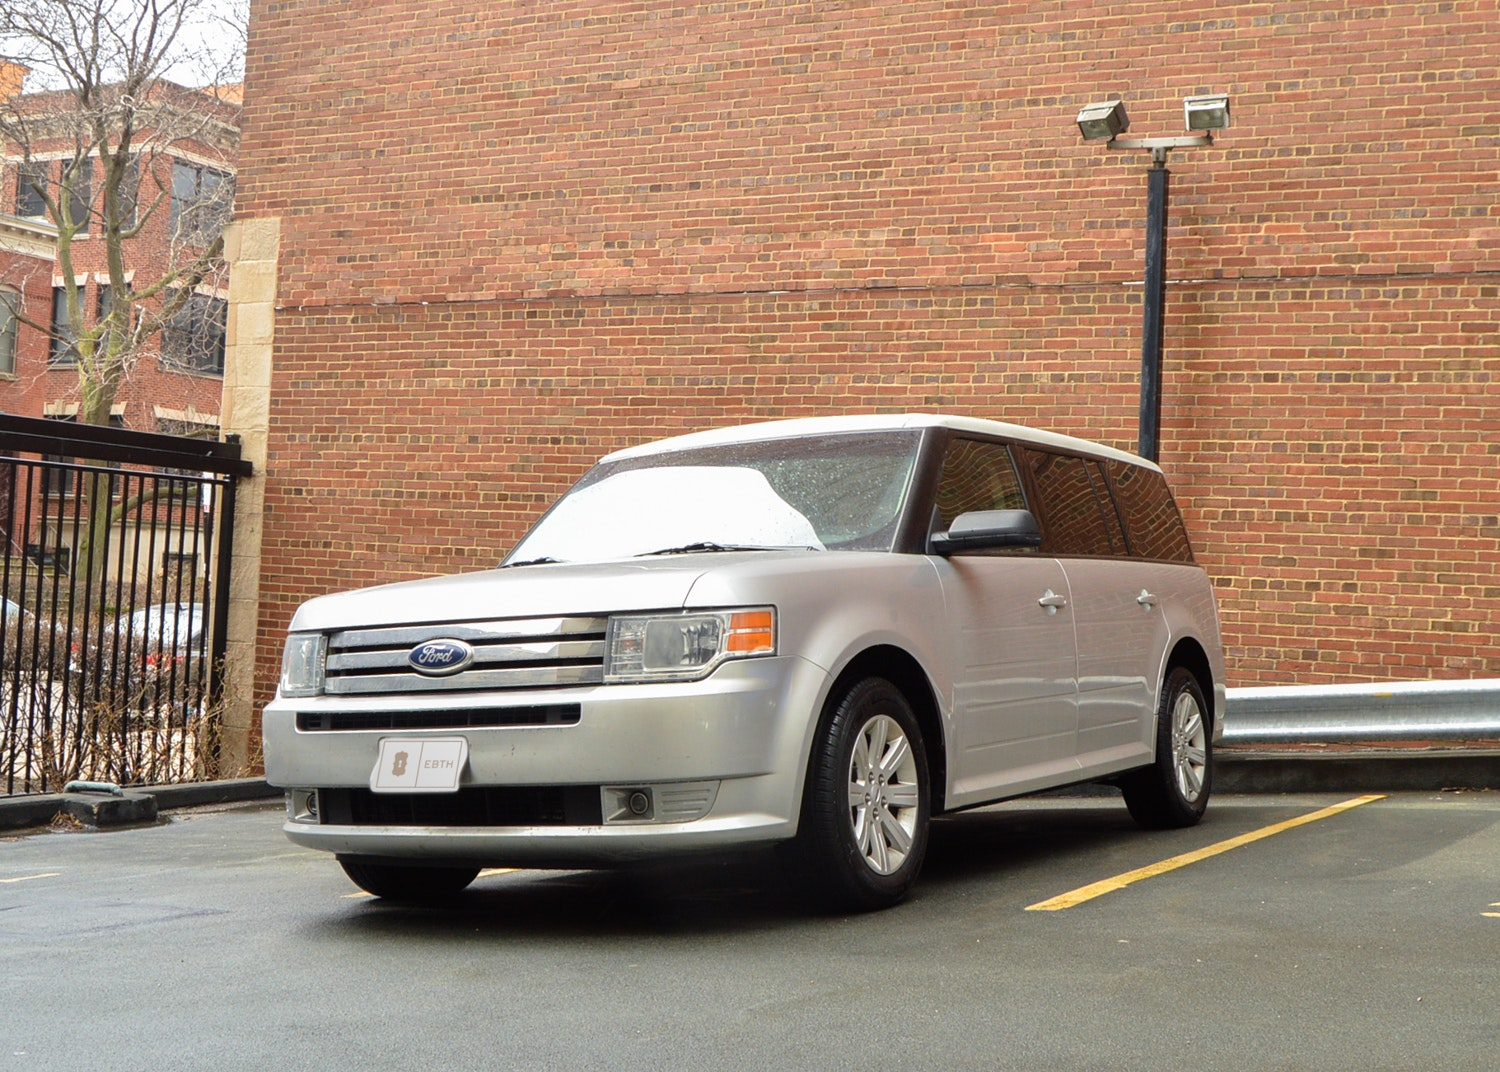 2012 Ford Flex Sport Utility Vehicle